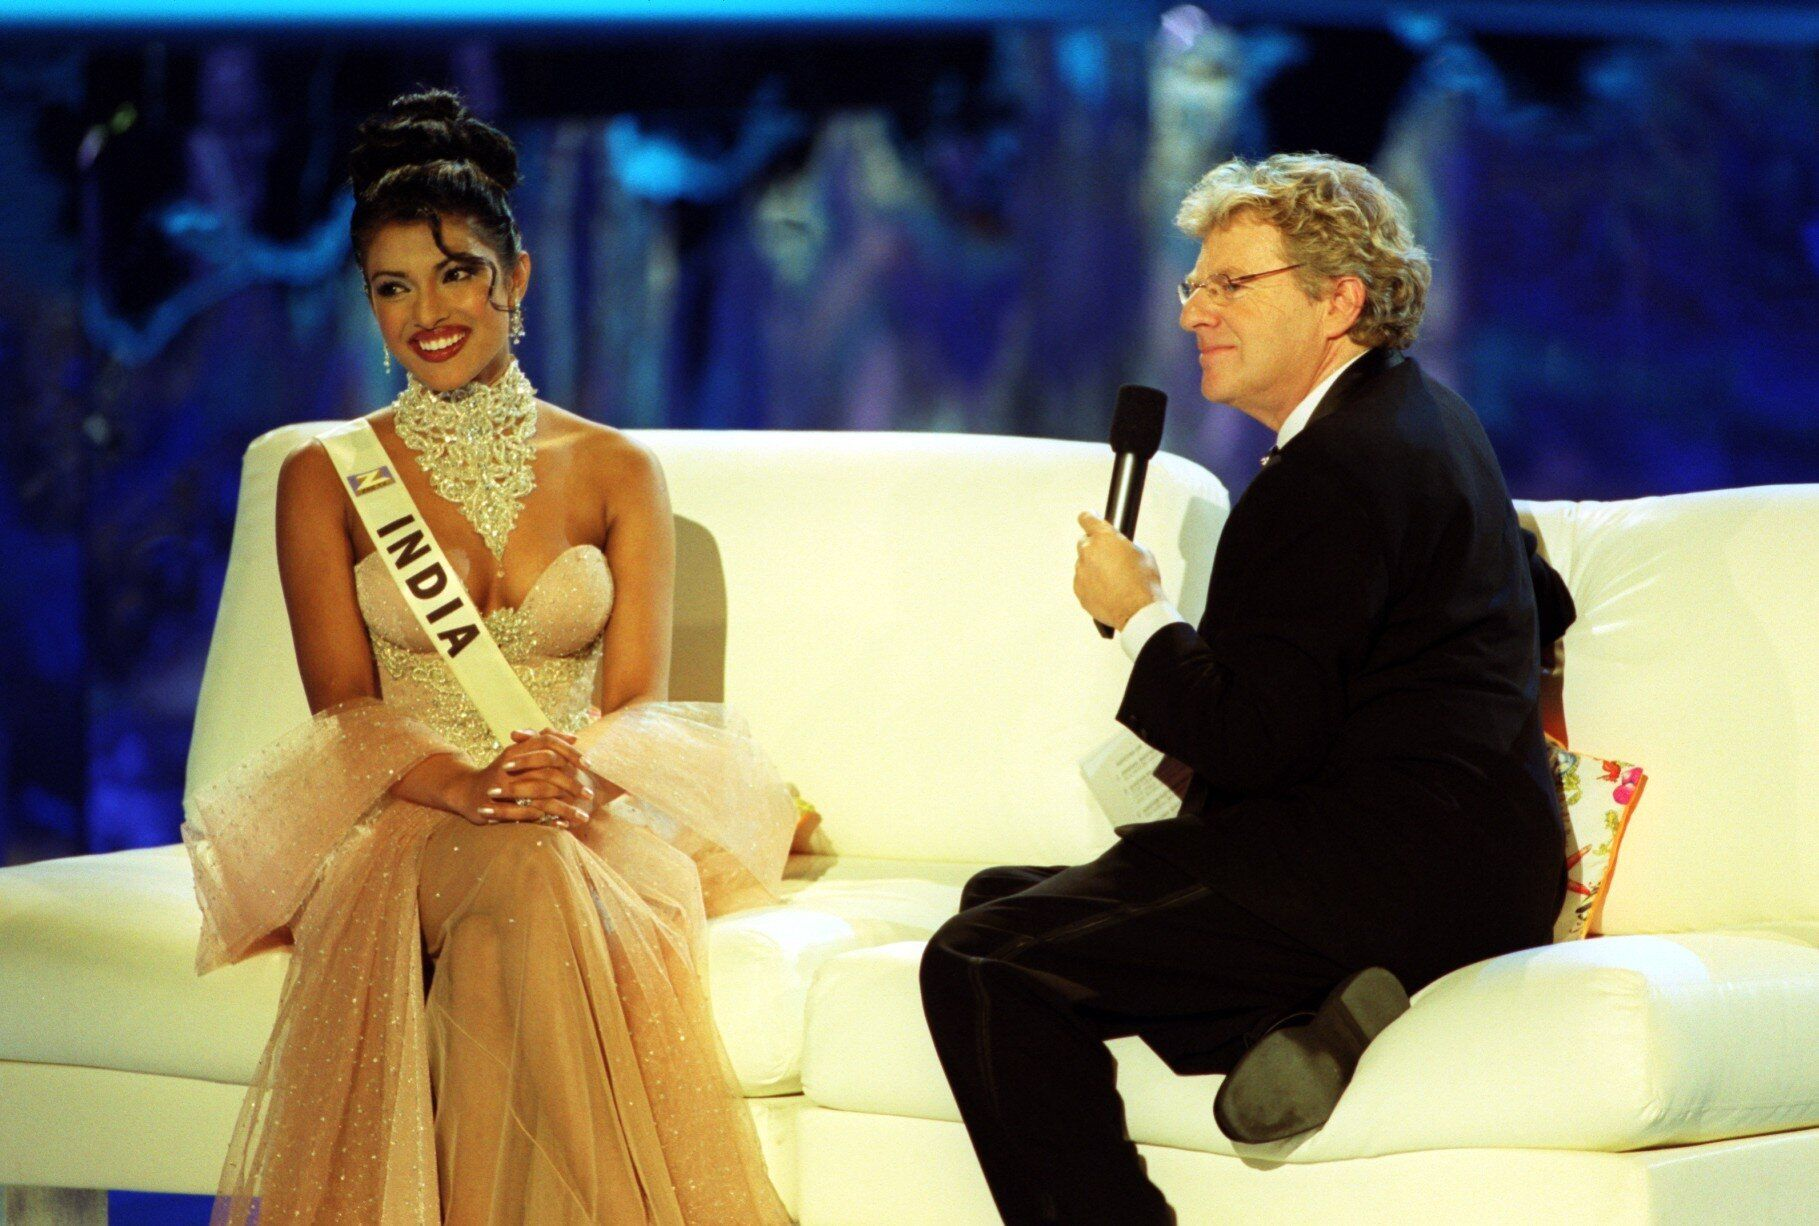 Chopra, then 18, speaks with host Jerry Springer during the Miss World 2000 contest.